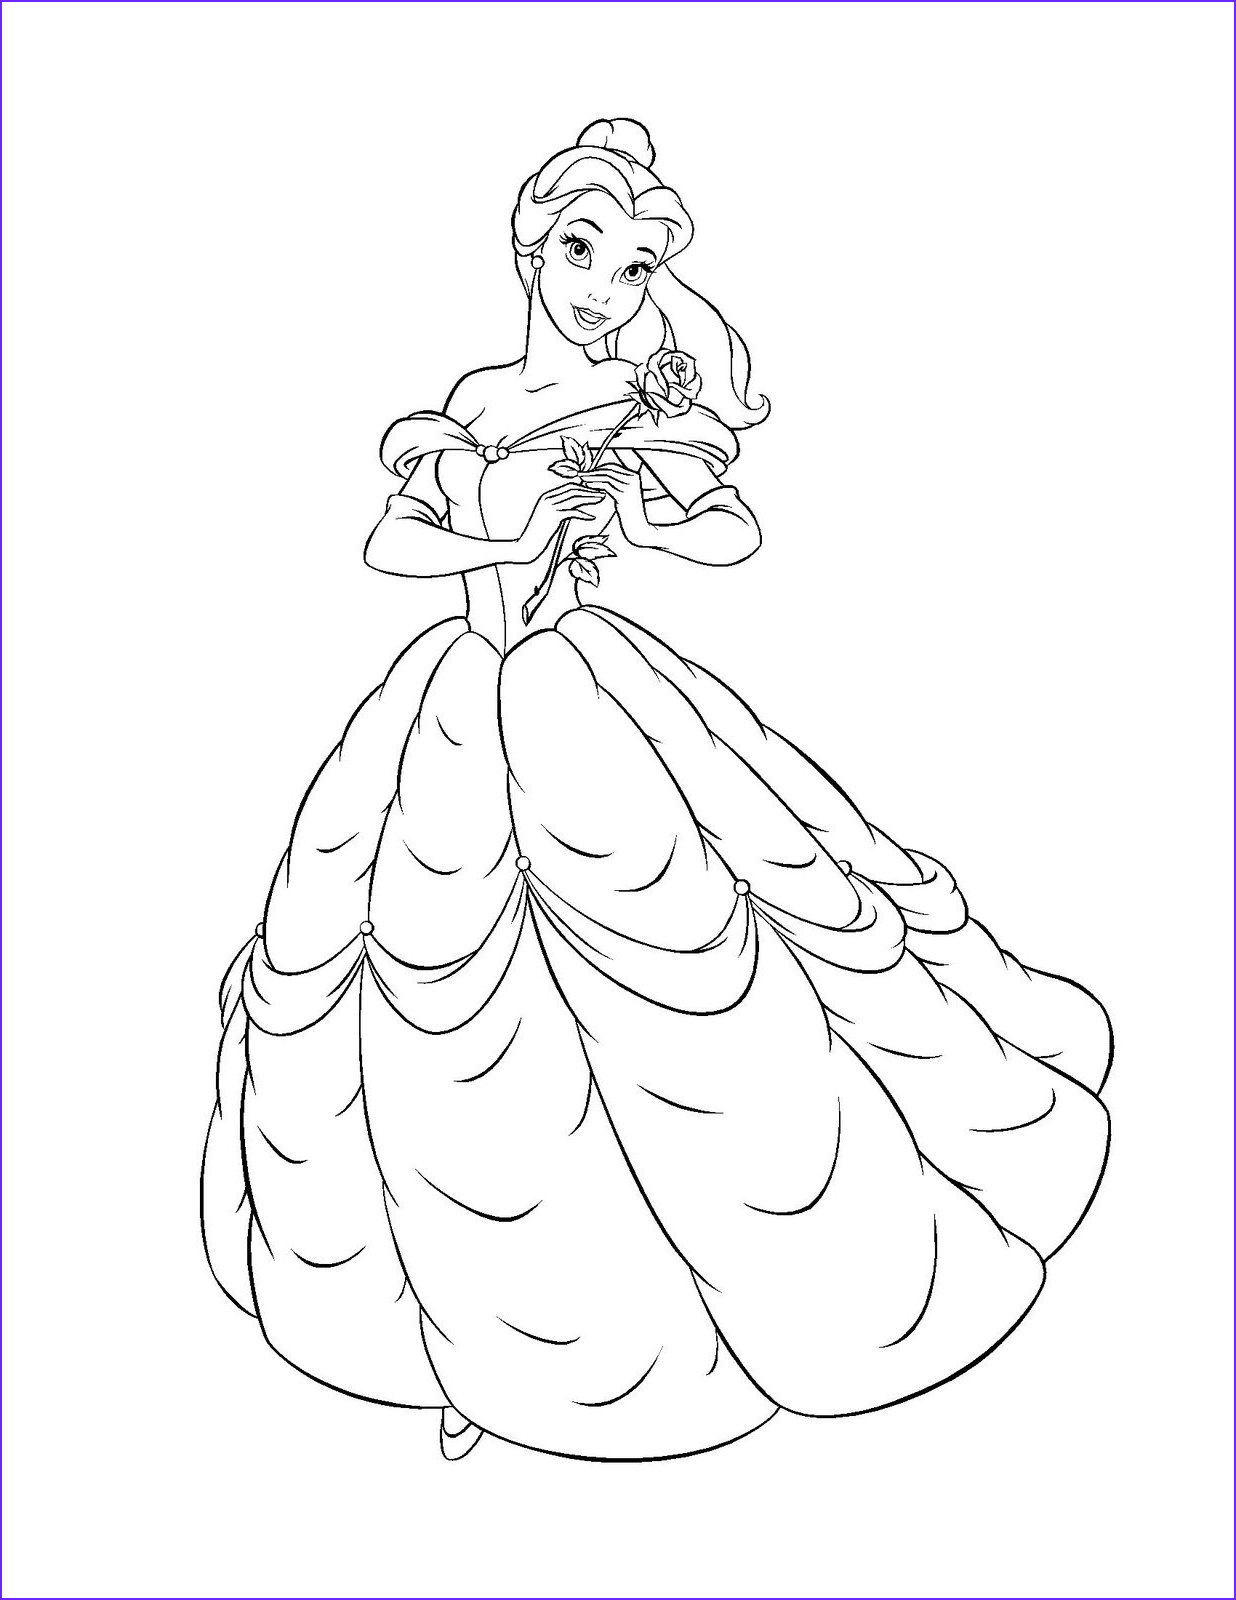 Belle Printable Coloring Page Cool Gallery Free Printable Belle Coloring Pages for Kids